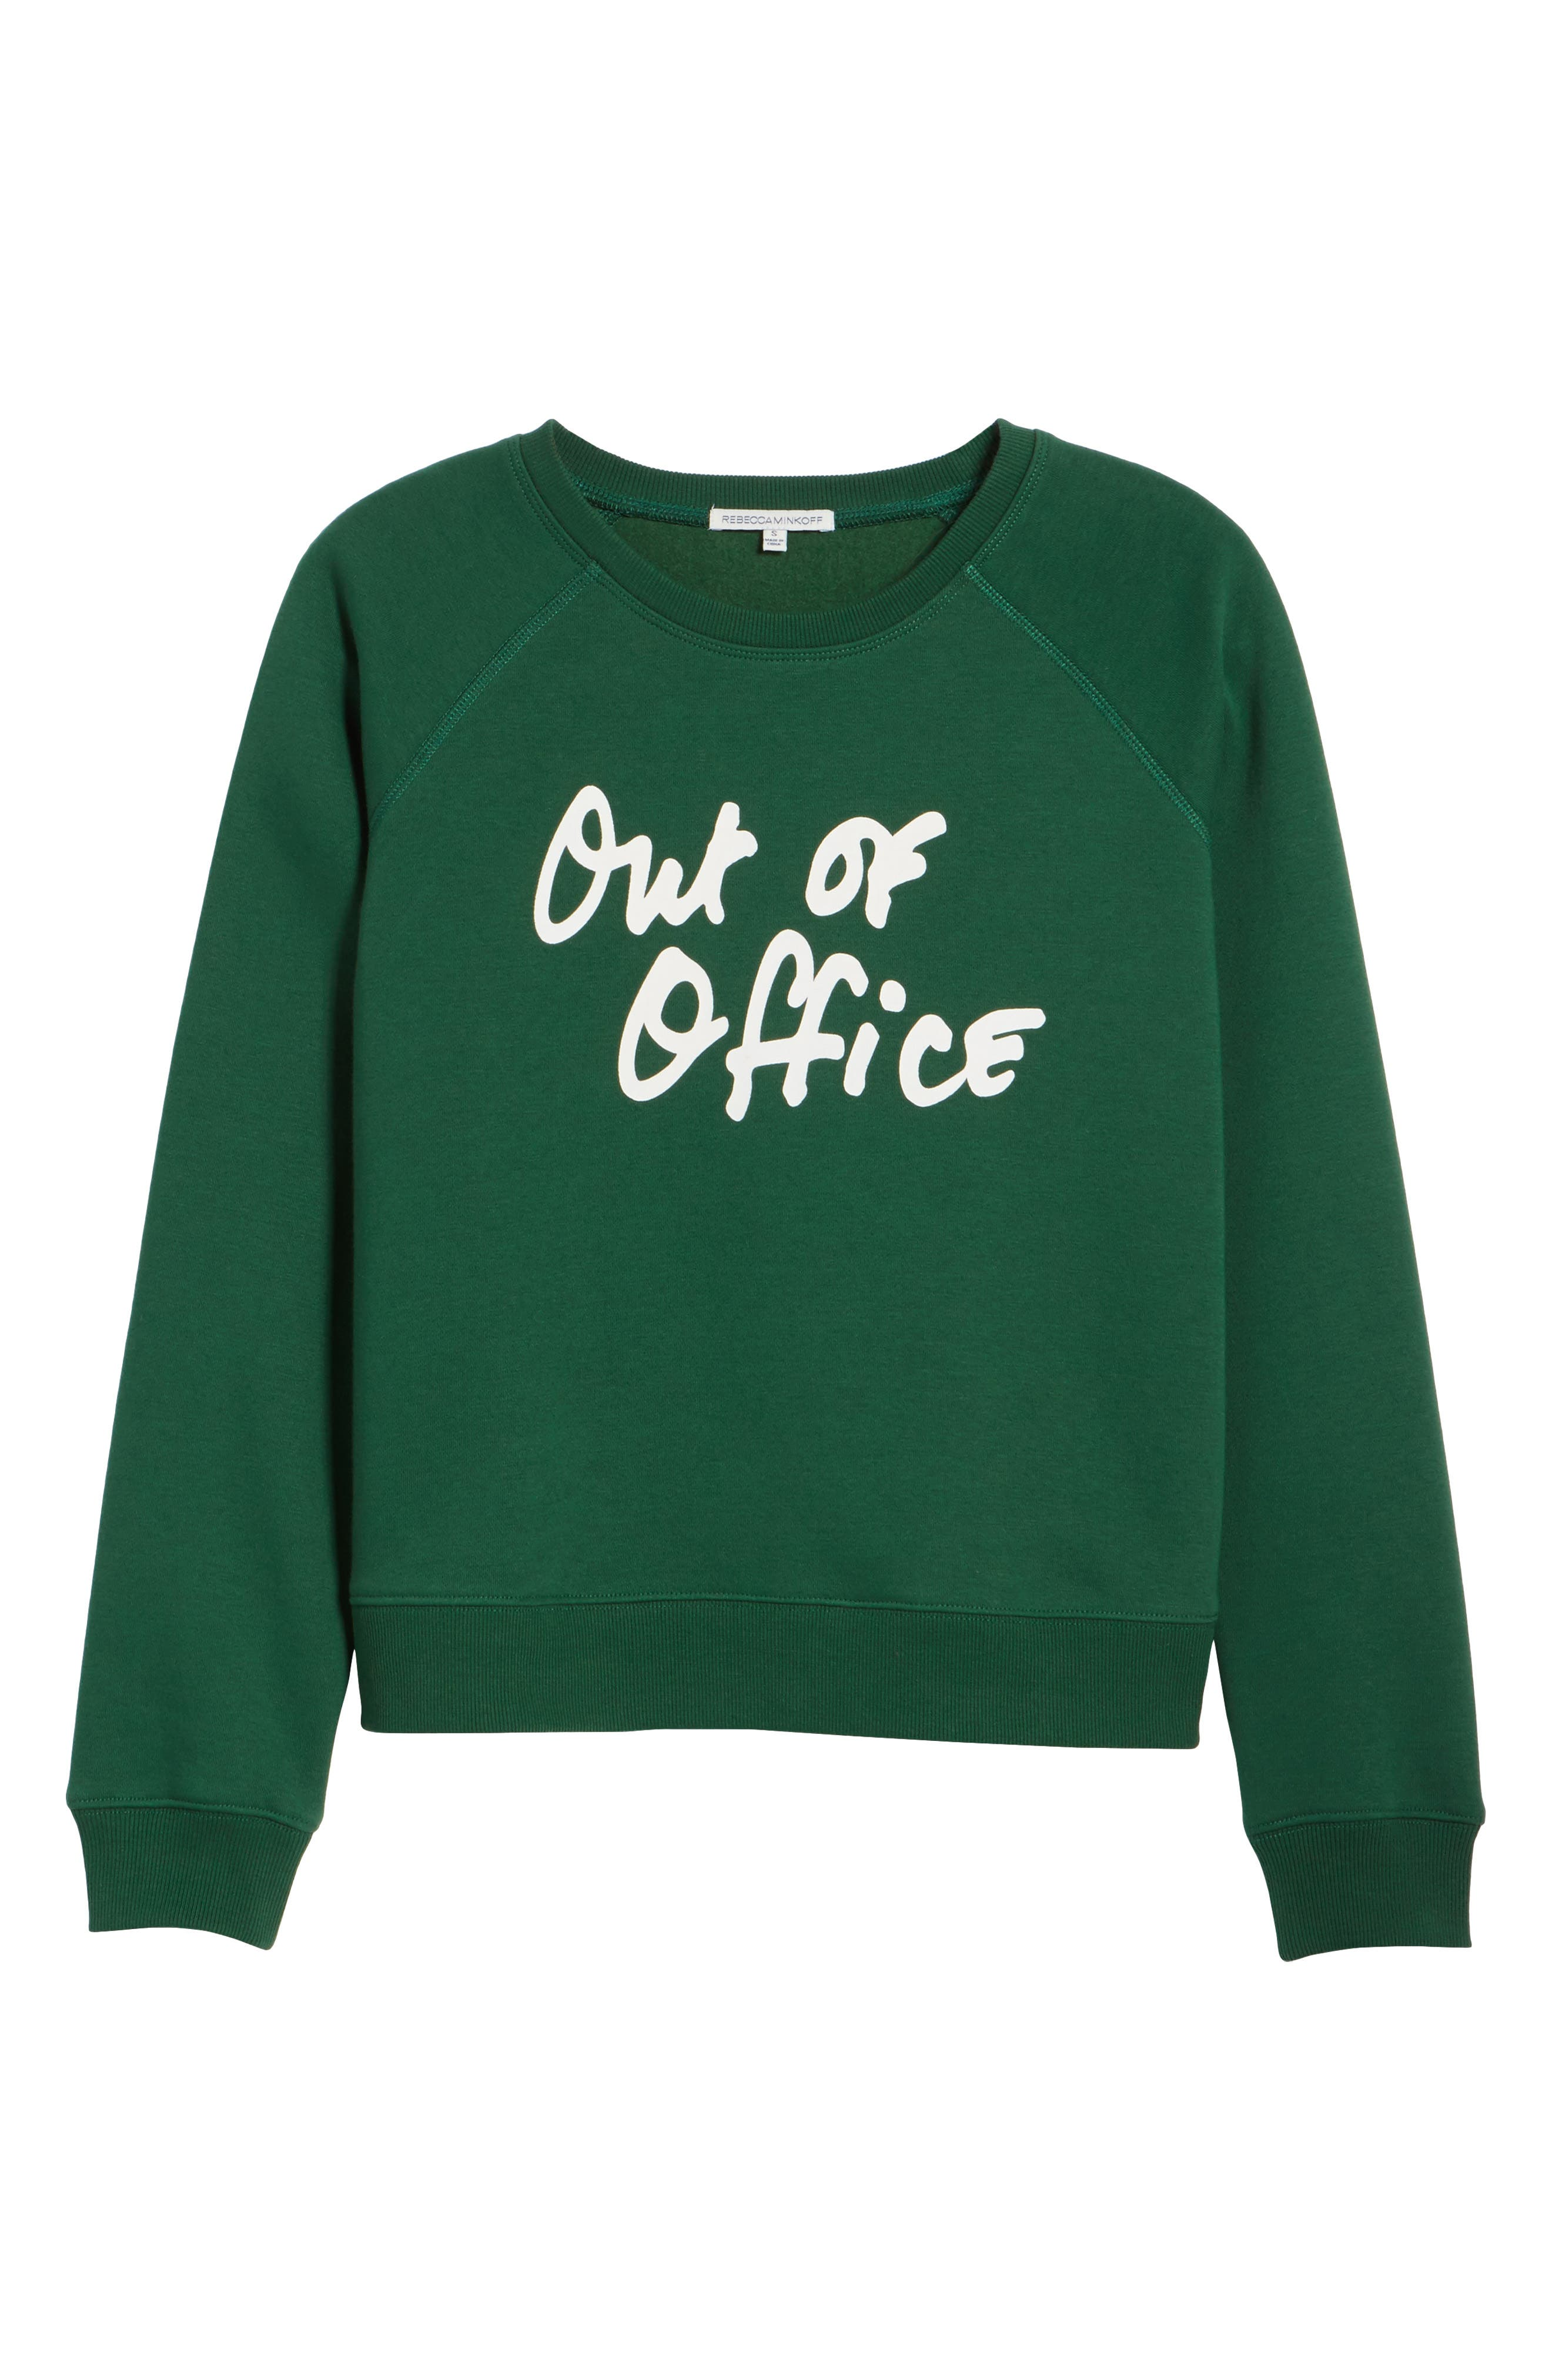 Out of Office Sweatshirt,                             Alternate thumbnail 6, color,                             Eden Multi